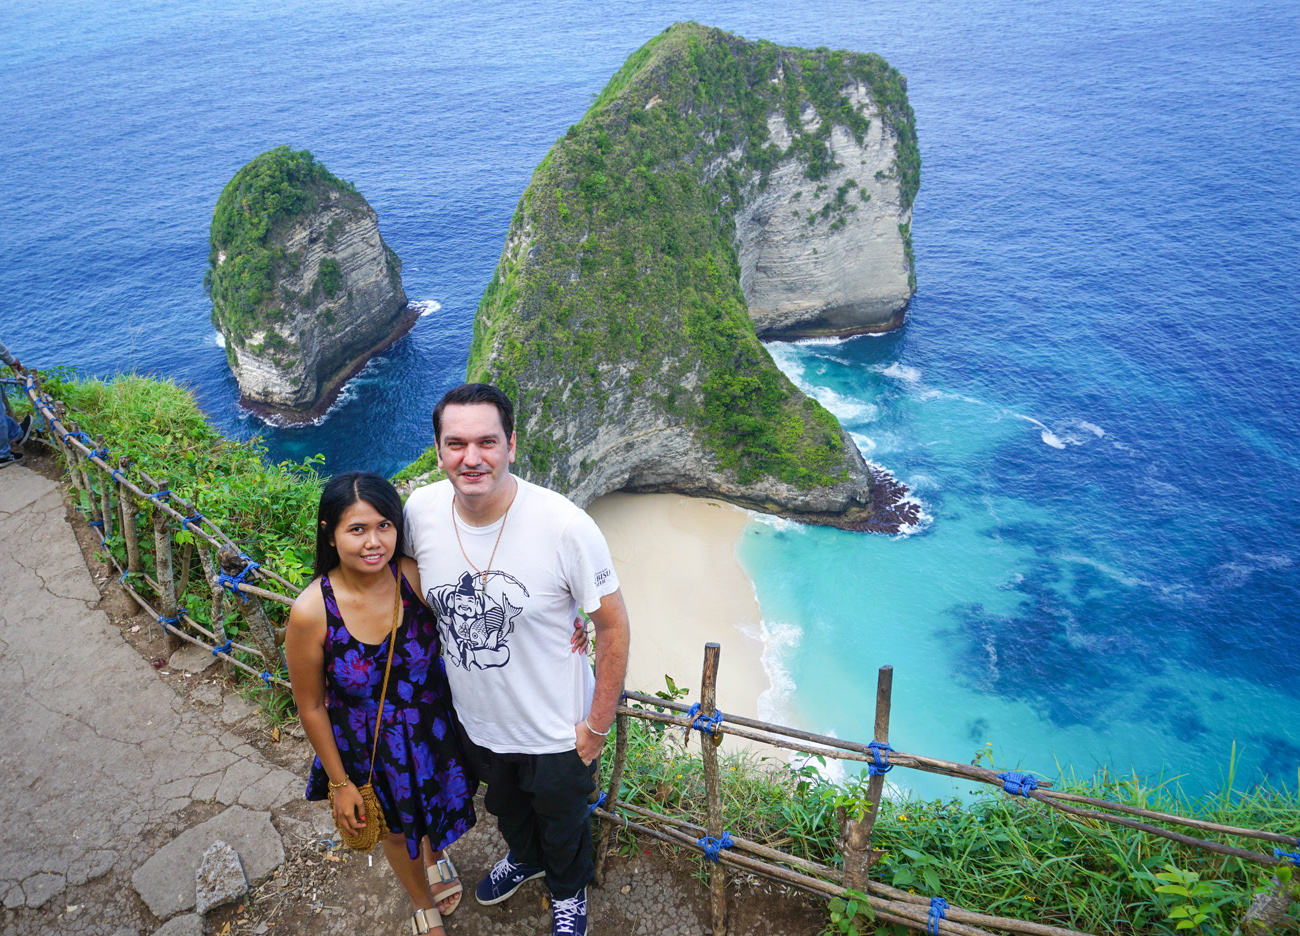 T-Rex Island Nusa Penida. Where to Stay in Bali Indonesia